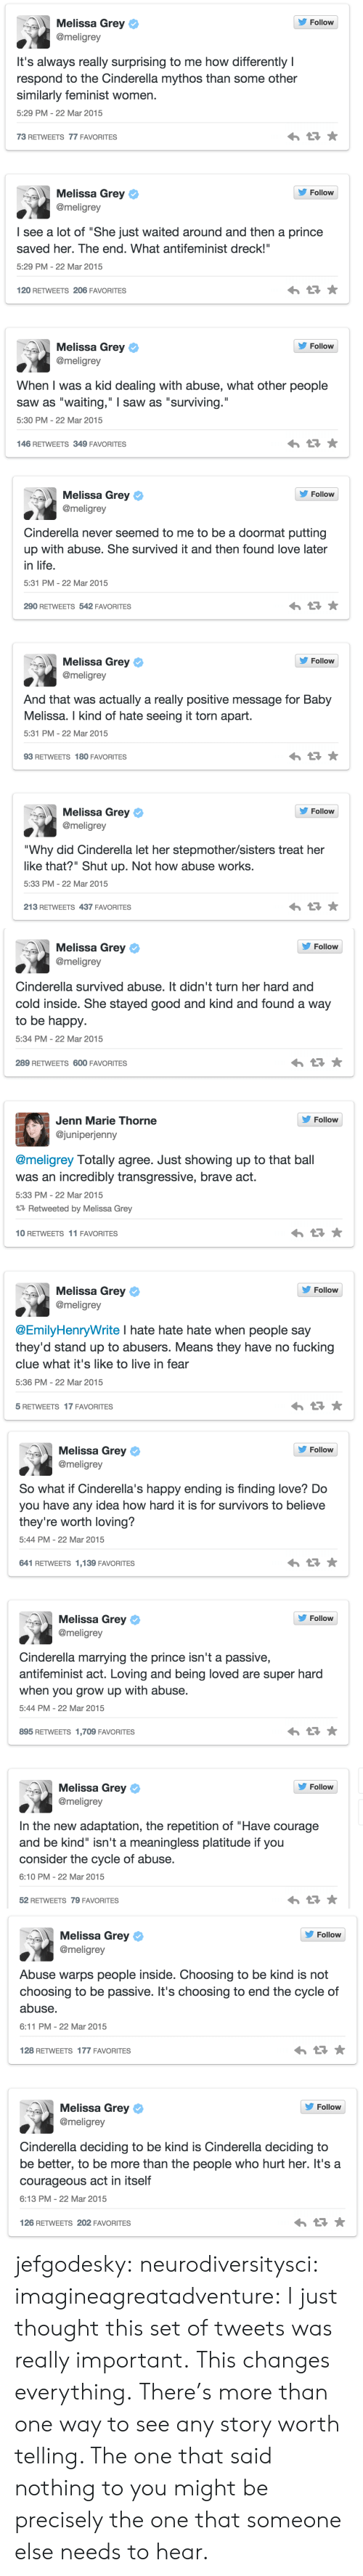 """Cinderella , Fucking, and Life: s, Melissa Grey  Follow  @meligrey  It's always really surprising to me how differently I  respond to the Cinderella mythos than some other  similarly feminist women.  5:29 PM-22 Mar 2015  73 RETWEETS 77 FAVORITES  Follow  Melissa Grey  @meligrey  I see a lot of """"She just waited around and then a prince  saved her. The end. What antifeminist dreck!""""  5:29 PM-22 Mar 2015  120 RETWEETS 206 FAVORITES  s, Melissa Grey  Follow  @meligrey  When I was a kid dealing with abuse, what other people  saw as """"waiting,"""" I saw as """"surviving.""""  5:30 PM- 22 Mar 2015  146 RETWEETS 349 FAVORITES   Melissa Grey ф  @meligrey  ' Follow  Cinderella never seemed to me to be a doormat putting  up with abuse. She survived it and then found love later  in life  5:31 PM-22 Mar 2015  290 RETWEETS 542 FAVORITES  Follow  Melissa Grey ф  @meligrey  And that was actually a really positive message for Baby  Melissa. I kind of hate seeing it torn apart.  5:31 PM-22 Mar 2015  93 RETWEETS 180 FAVORITES  Follow  Melissa Grey ф  @meligrey  """"Why did Cinderella let her stepmother/sisters treat her  like that?"""" Shut up. Not how abuse works.  5:33 PM-22 Mar 2015  213 RETWEETS 437 FAVORITES   s, Melissa Grey  @meligrey  Follow  Cinderella survived abuse. It didn't turn her hard and  cold inside. She stayed good and kind and found a way  to be happy  5:34 PM- 22 Mar 2015  289 RETWEETS 600 FAVORITES  Follovw  Jenn Marie Thorne  @juniperjenny  @meligrey Totally agree. Just showing up to that ball  was an incredibly transgressive, brave act.  5:33 PM- 22 Mar 2015  Retweeted by Melissa Grey  10 RETWEETS 11 FAVORITES  s, Melissa Grey  Follow  @meligrey  @EmilyHenryWrite I hate hate hate when people say  they'd stand up to abusers. Means they have no fucking  clue what it's like to live in fear  5:36 PM- 22 Mar 2015  5 RETWEETS 17 FAVORITES   Follow  Melissa Grey ф  @meligrey  So what if Cinderella's happy ending is finding love? Do  you have any idea how hard it is for survivors to b"""